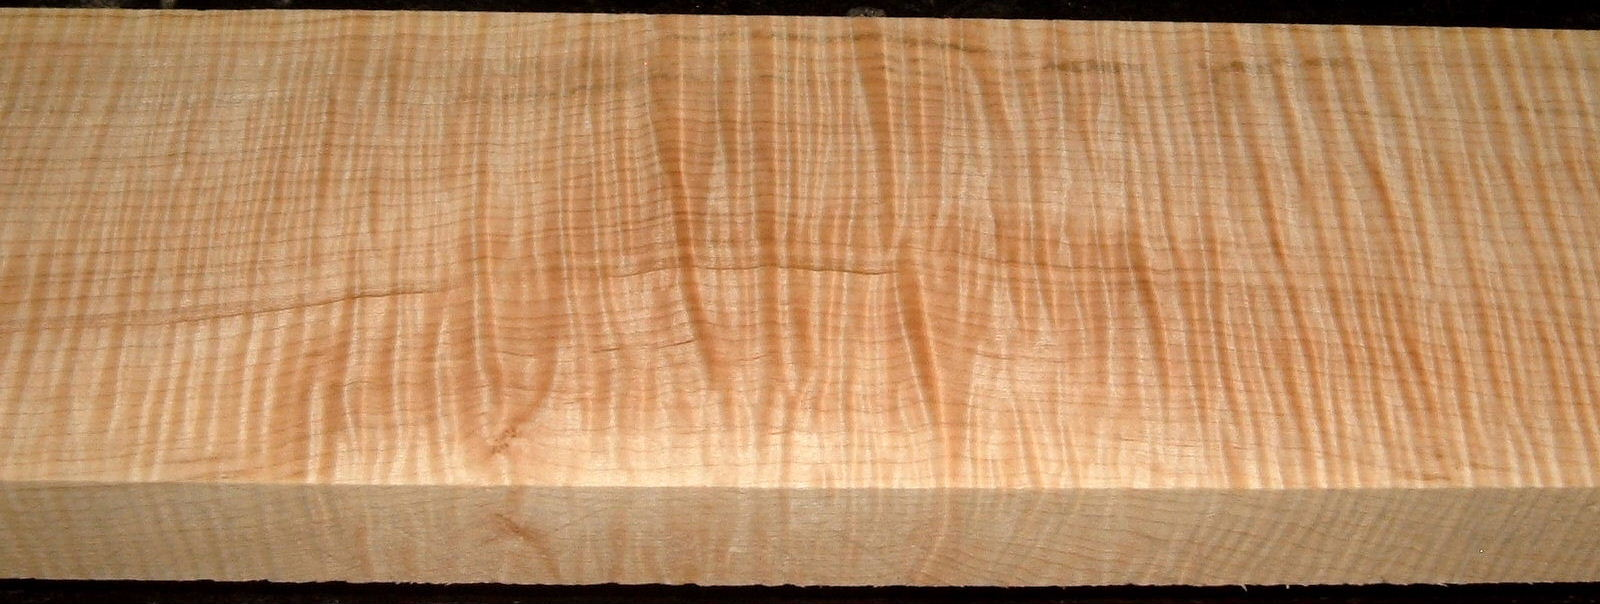 QS2001-8, 1-5/16x5x32, Quartersawn Curly Maple